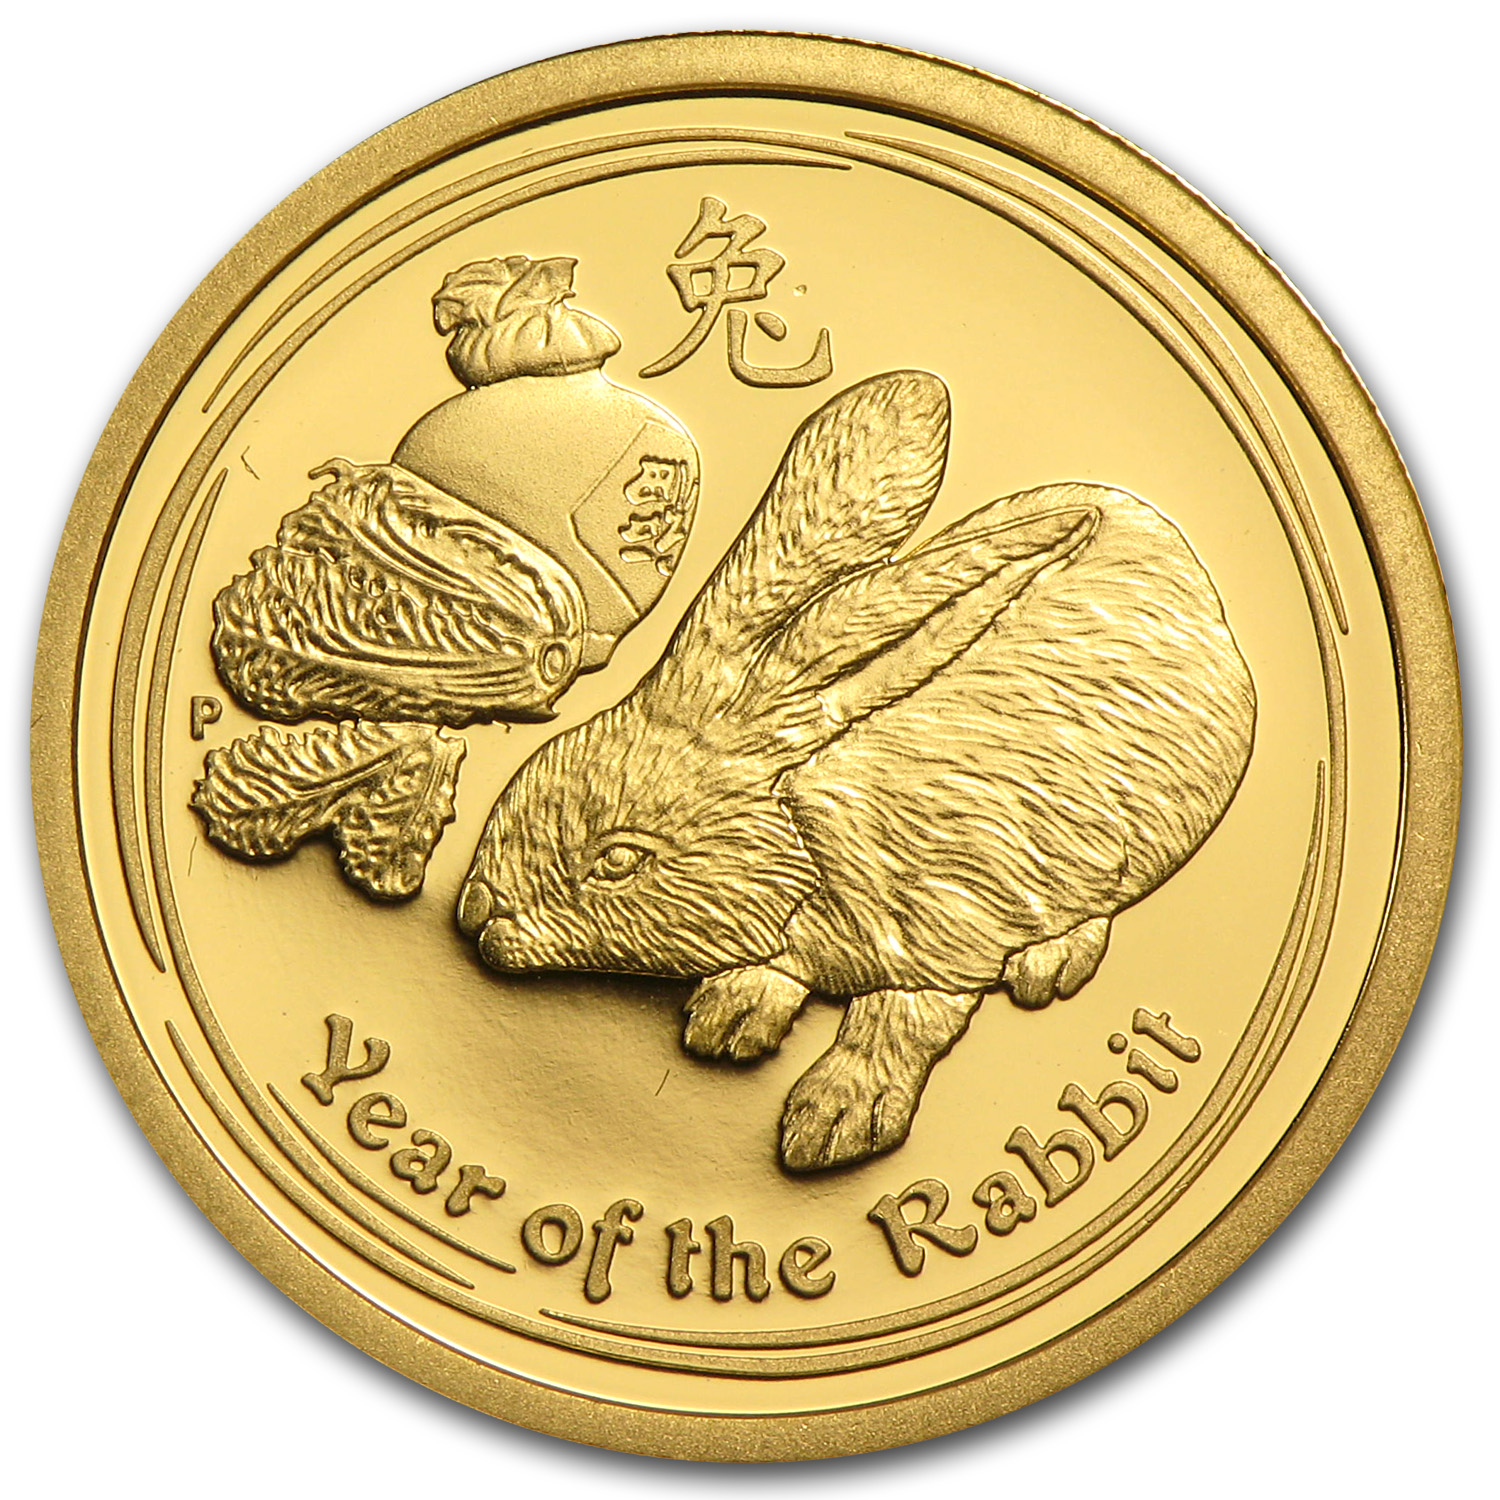 2011 Australia 1/4 oz Gold Lunar Rabbit Proof (Series II)